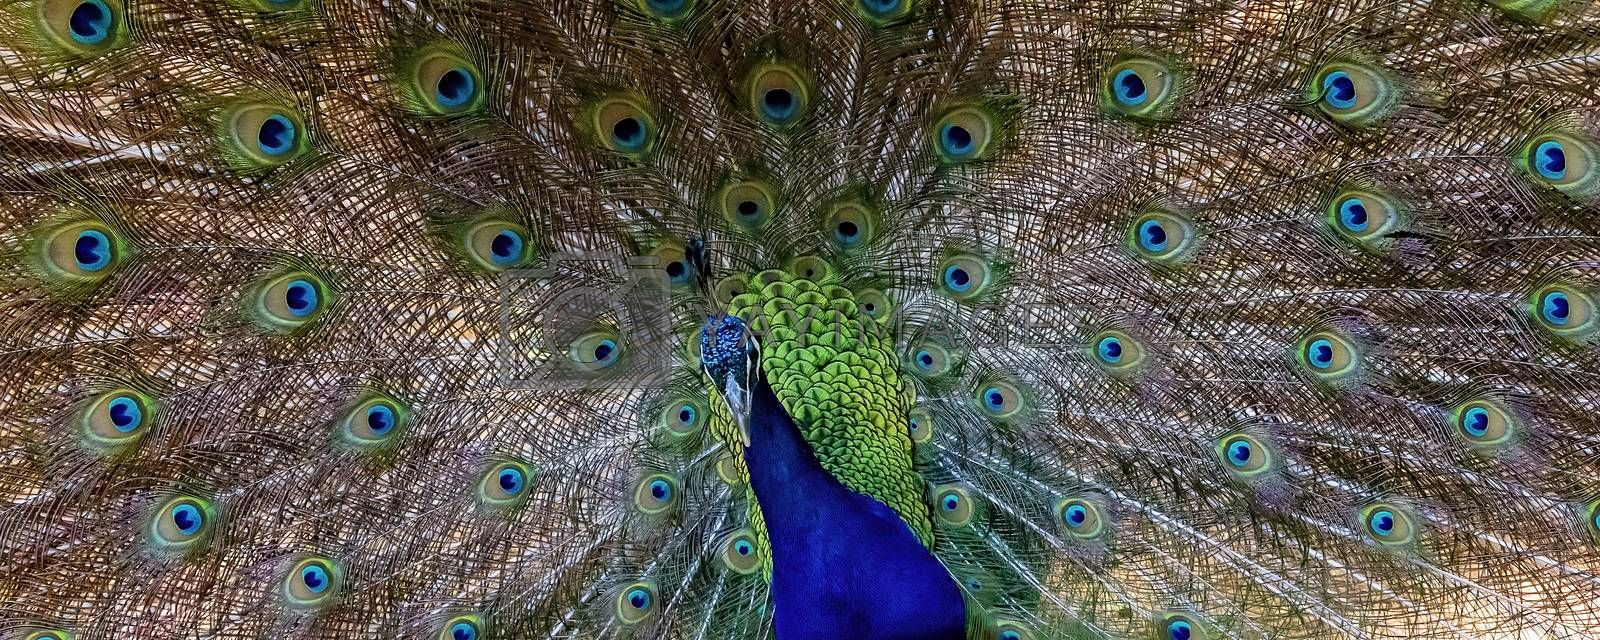 Closeup of a peacock with its beautiful iridescent plumage